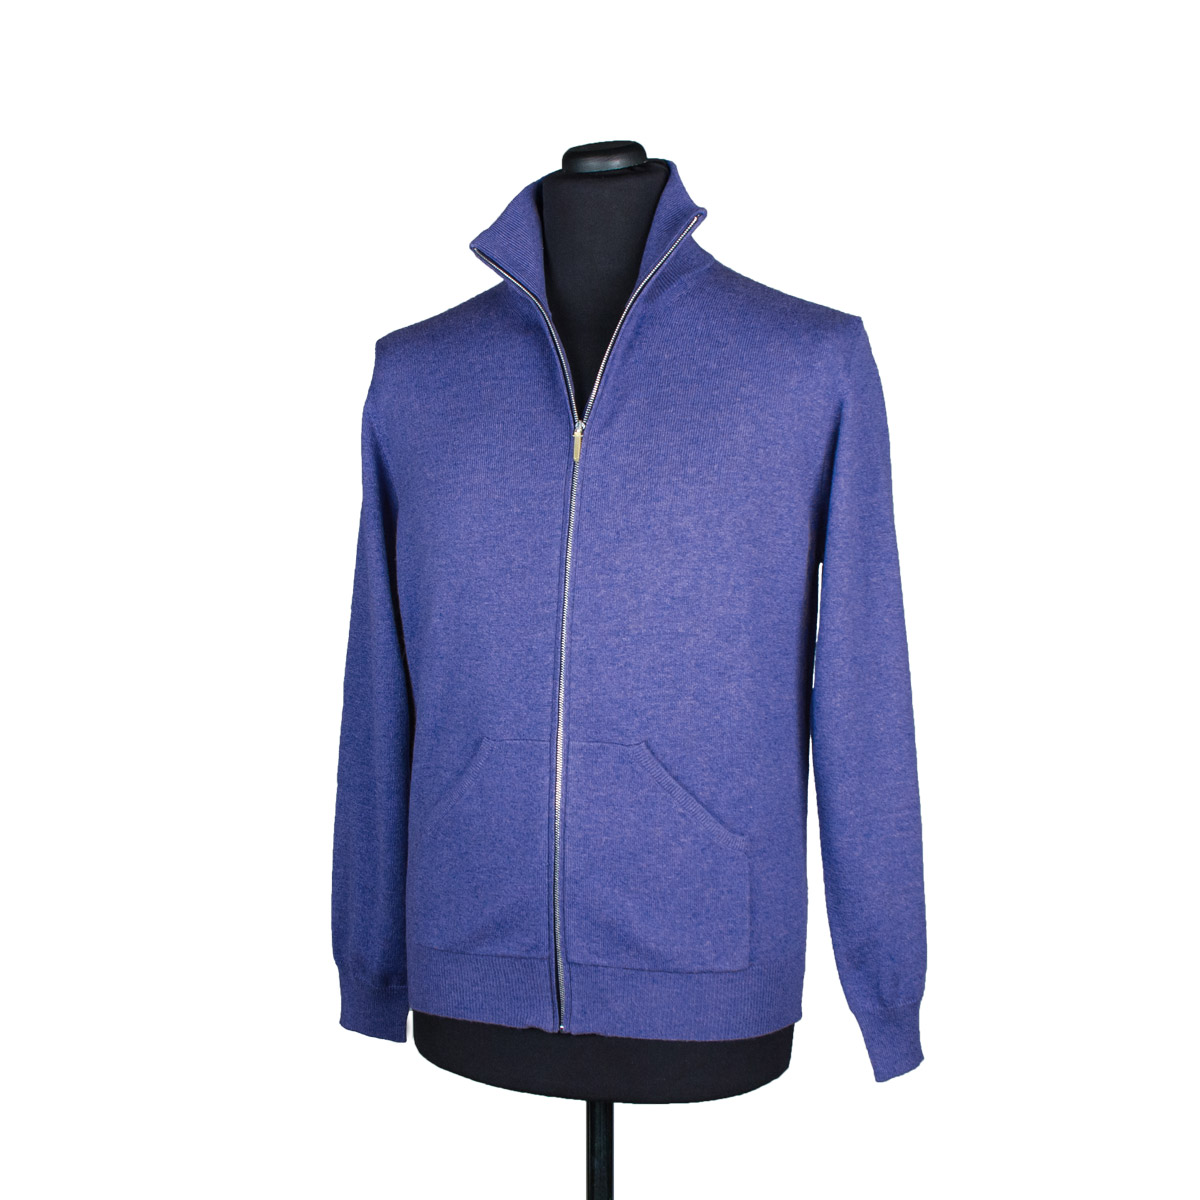 Mens zip up cashmere cardigan with pockets, lavender blue ...